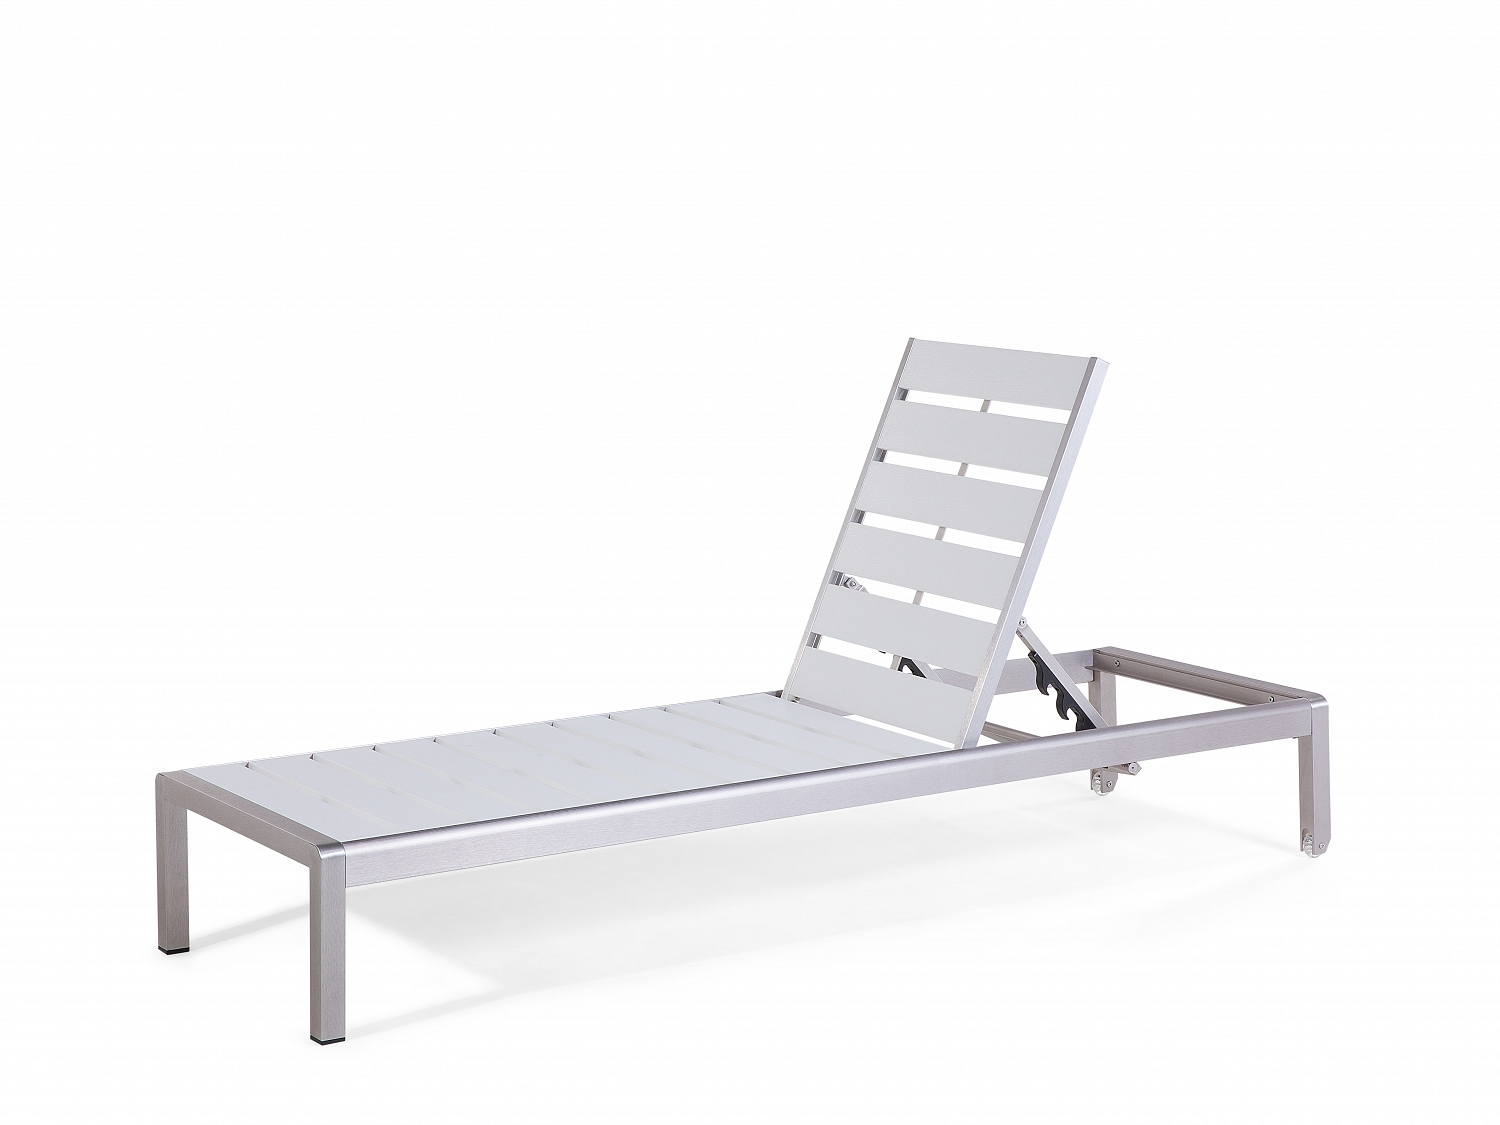 chaise longue transat aluminium transat transat jardin transat blanc jardin ebay. Black Bedroom Furniture Sets. Home Design Ideas